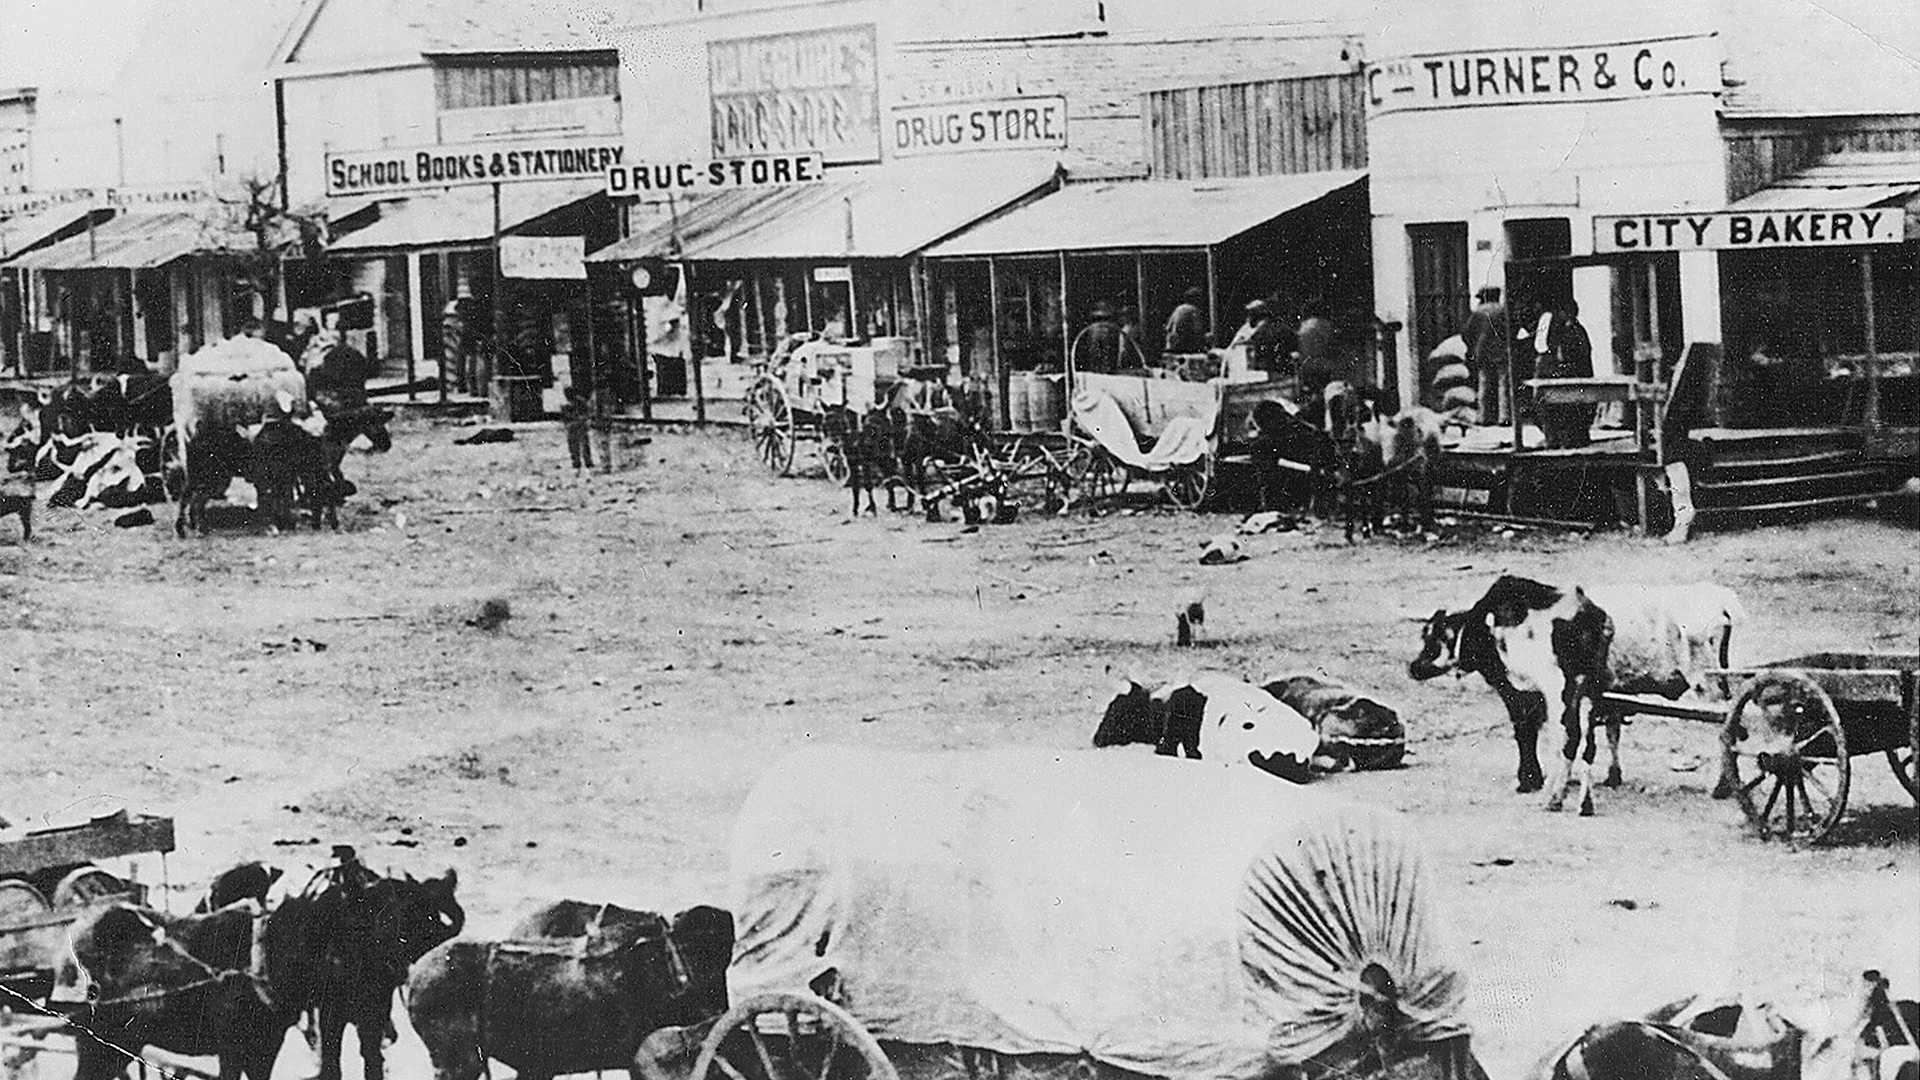 downtown bryan in 1871